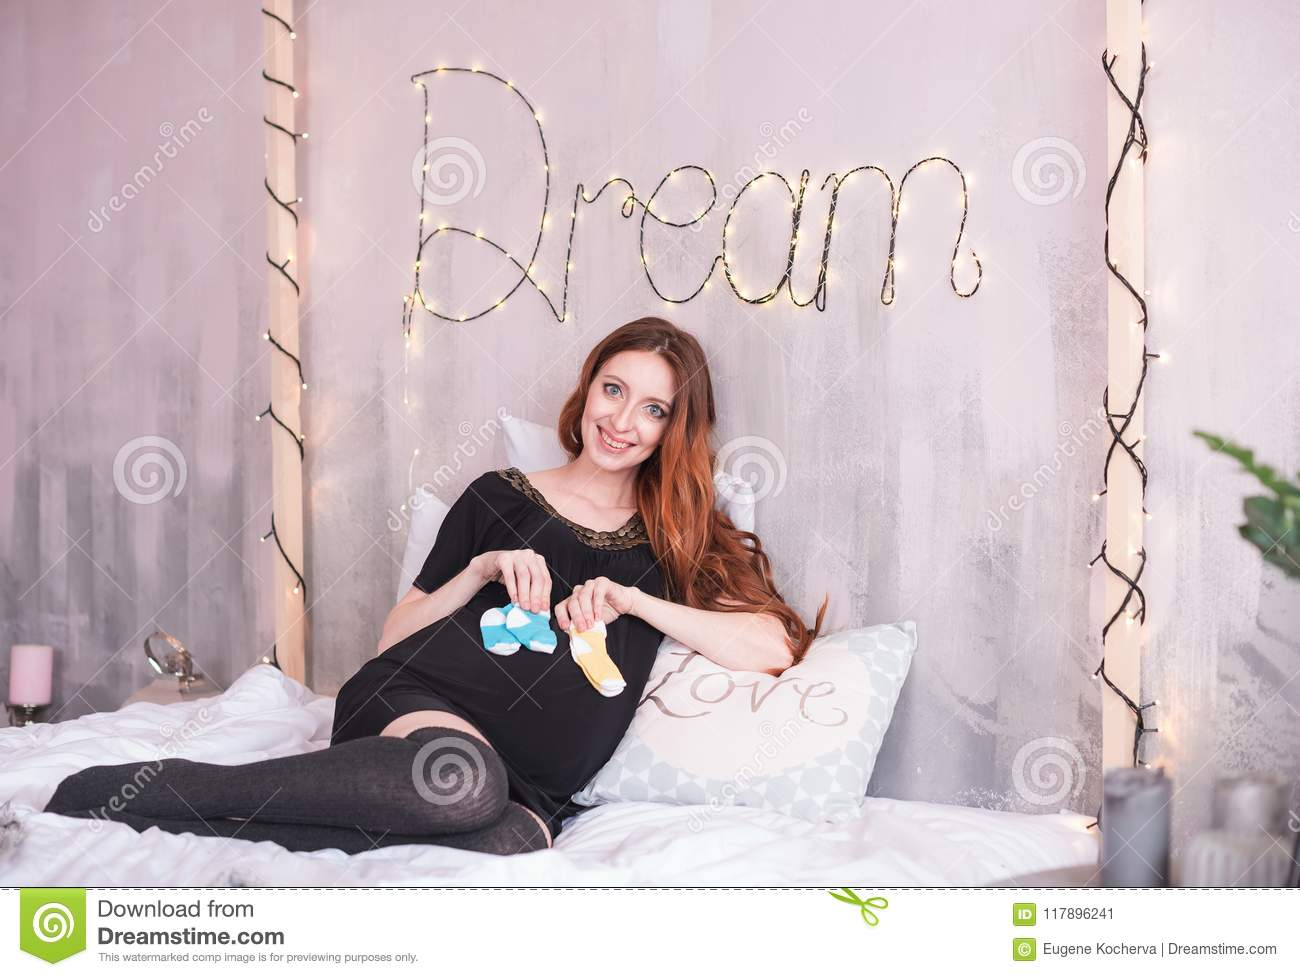 The Pregnant Woman With Long Red Hair In A Black Dress Stock Image